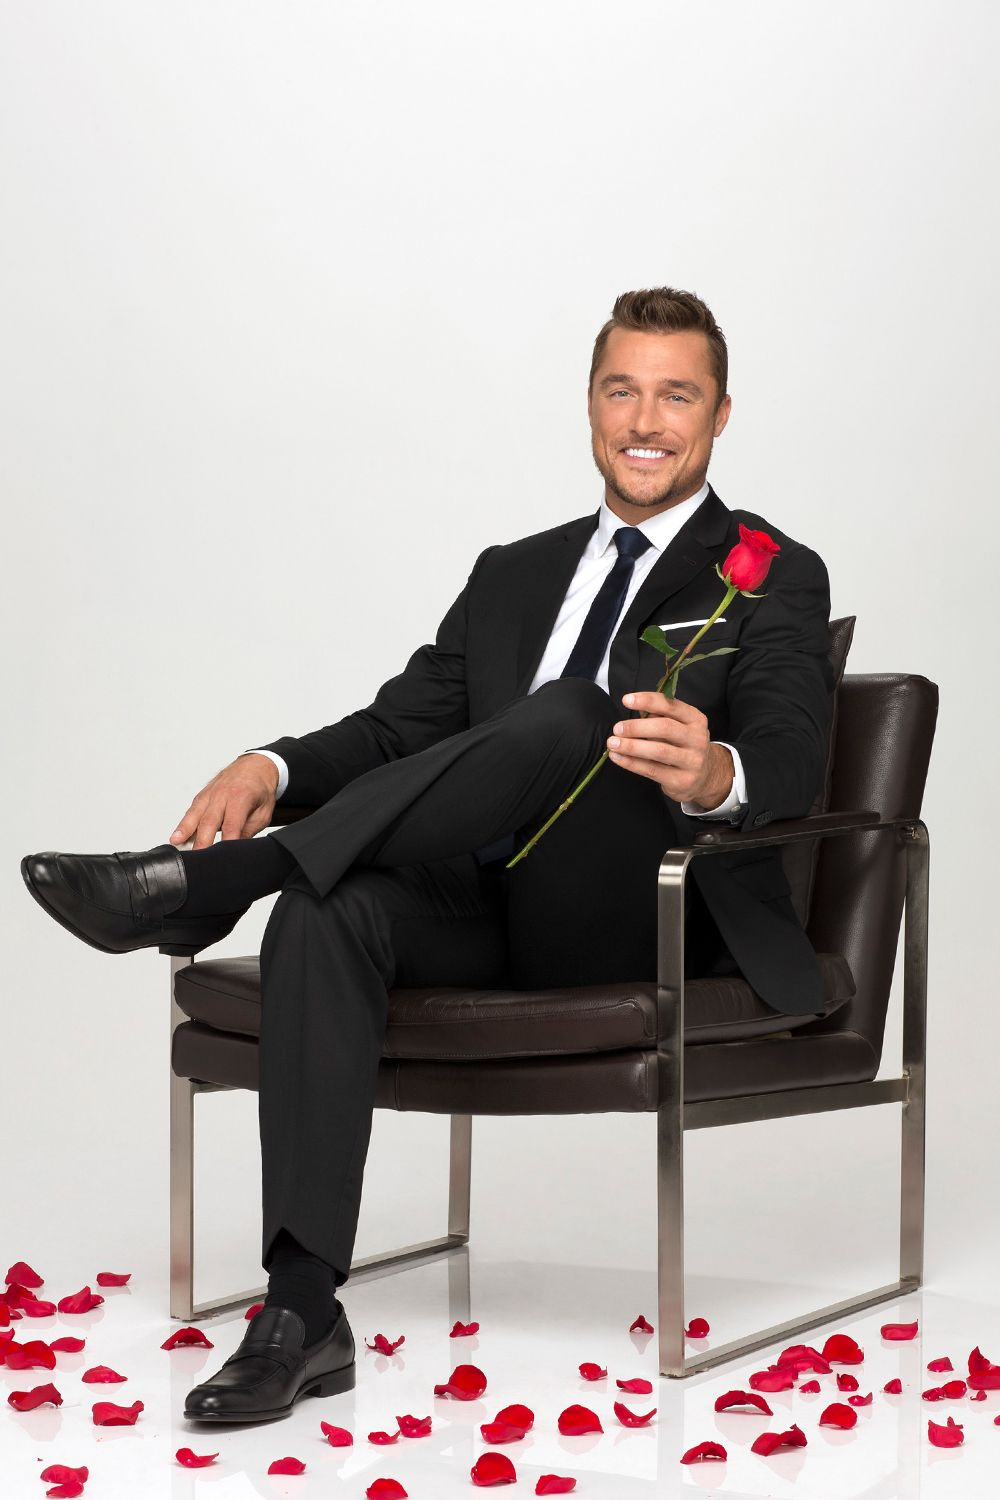 Chris Soules ('The Bachelor' Season 19) Interestingly enough, Chris Soules' controversy came after his season aired. In April 2017, Chris was arrested for fleeing a deadly car accident in Iowa .